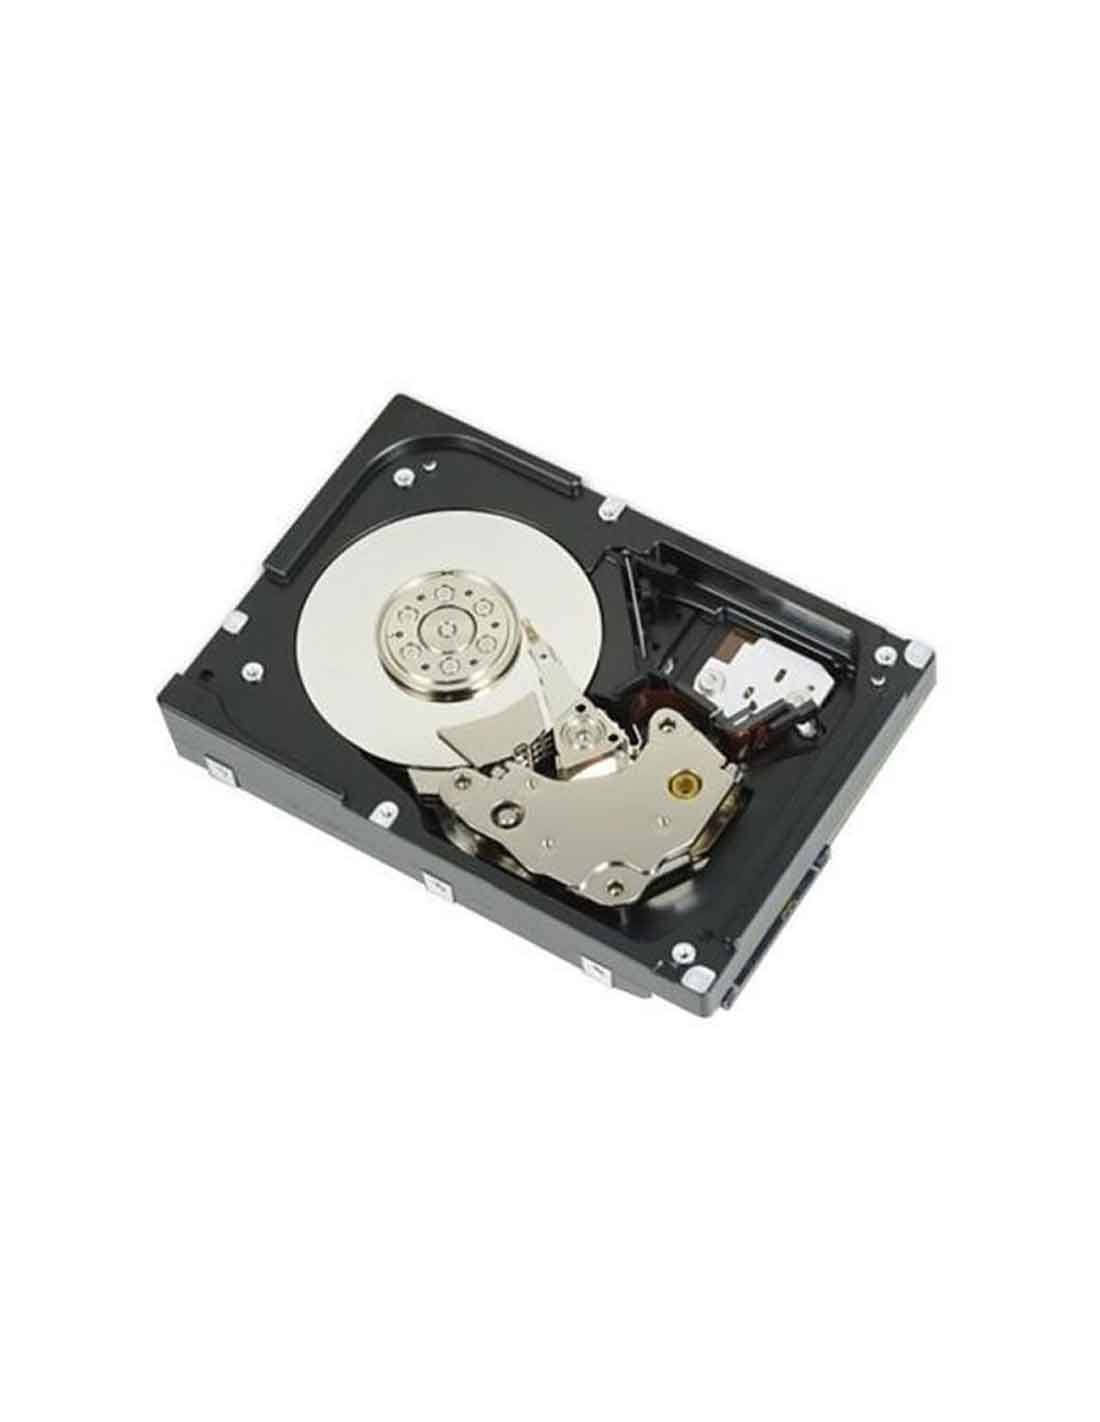 Dell 300GB 15K RPM SAS 12Gbps 2.5in Hot-plug Hard Drive, Customer Kit at a cheap price in Dubai